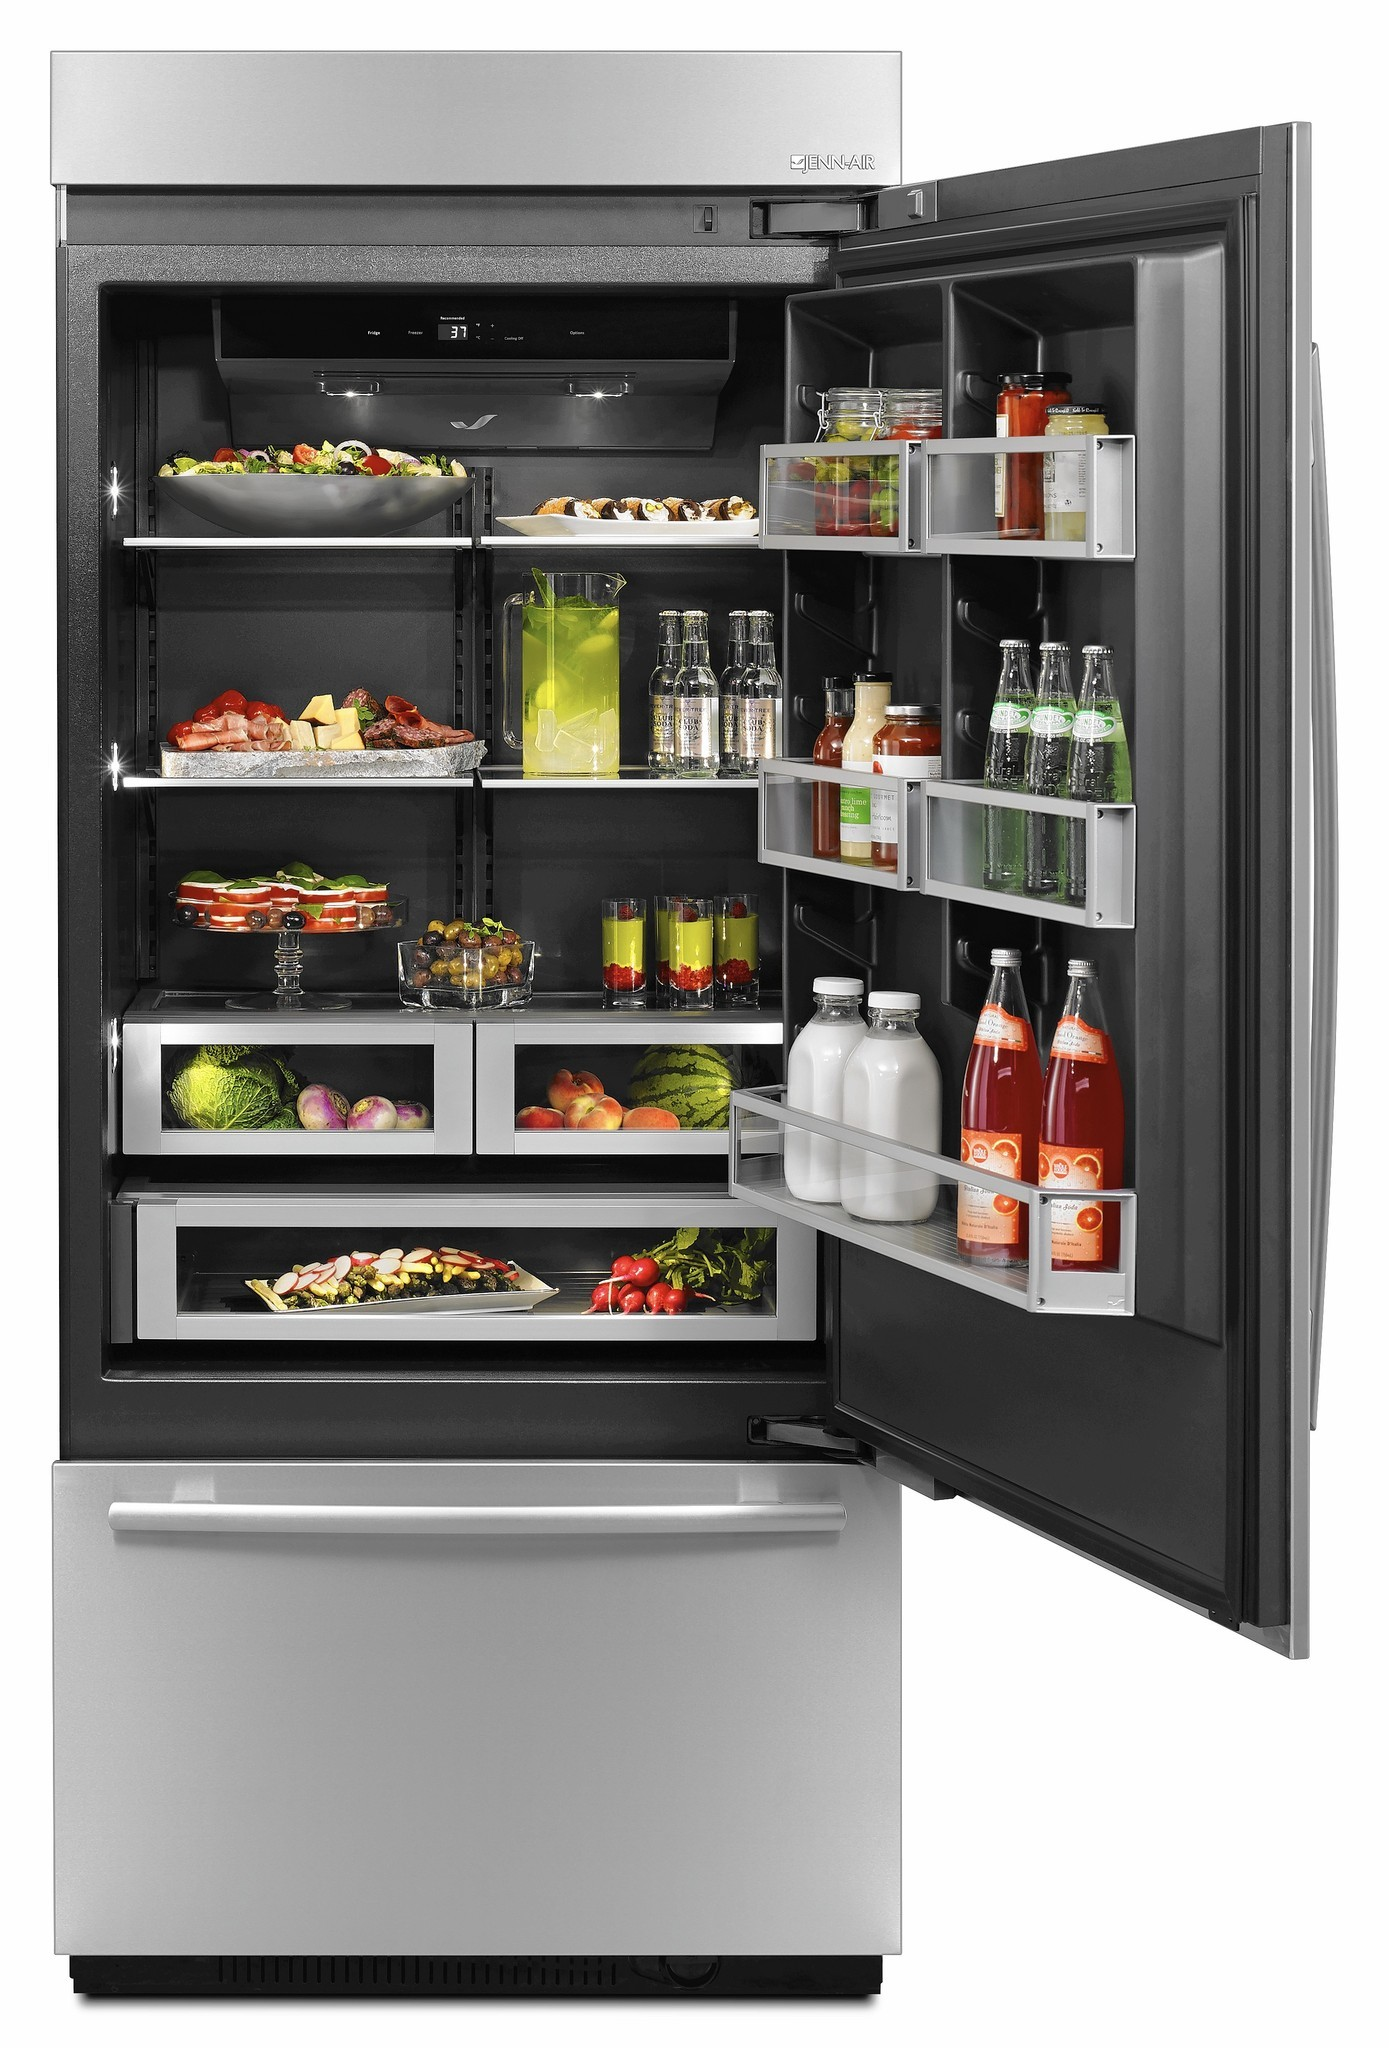 A New Refrigerator From Jenn Air Features An All Black Interior Chicago Tribune